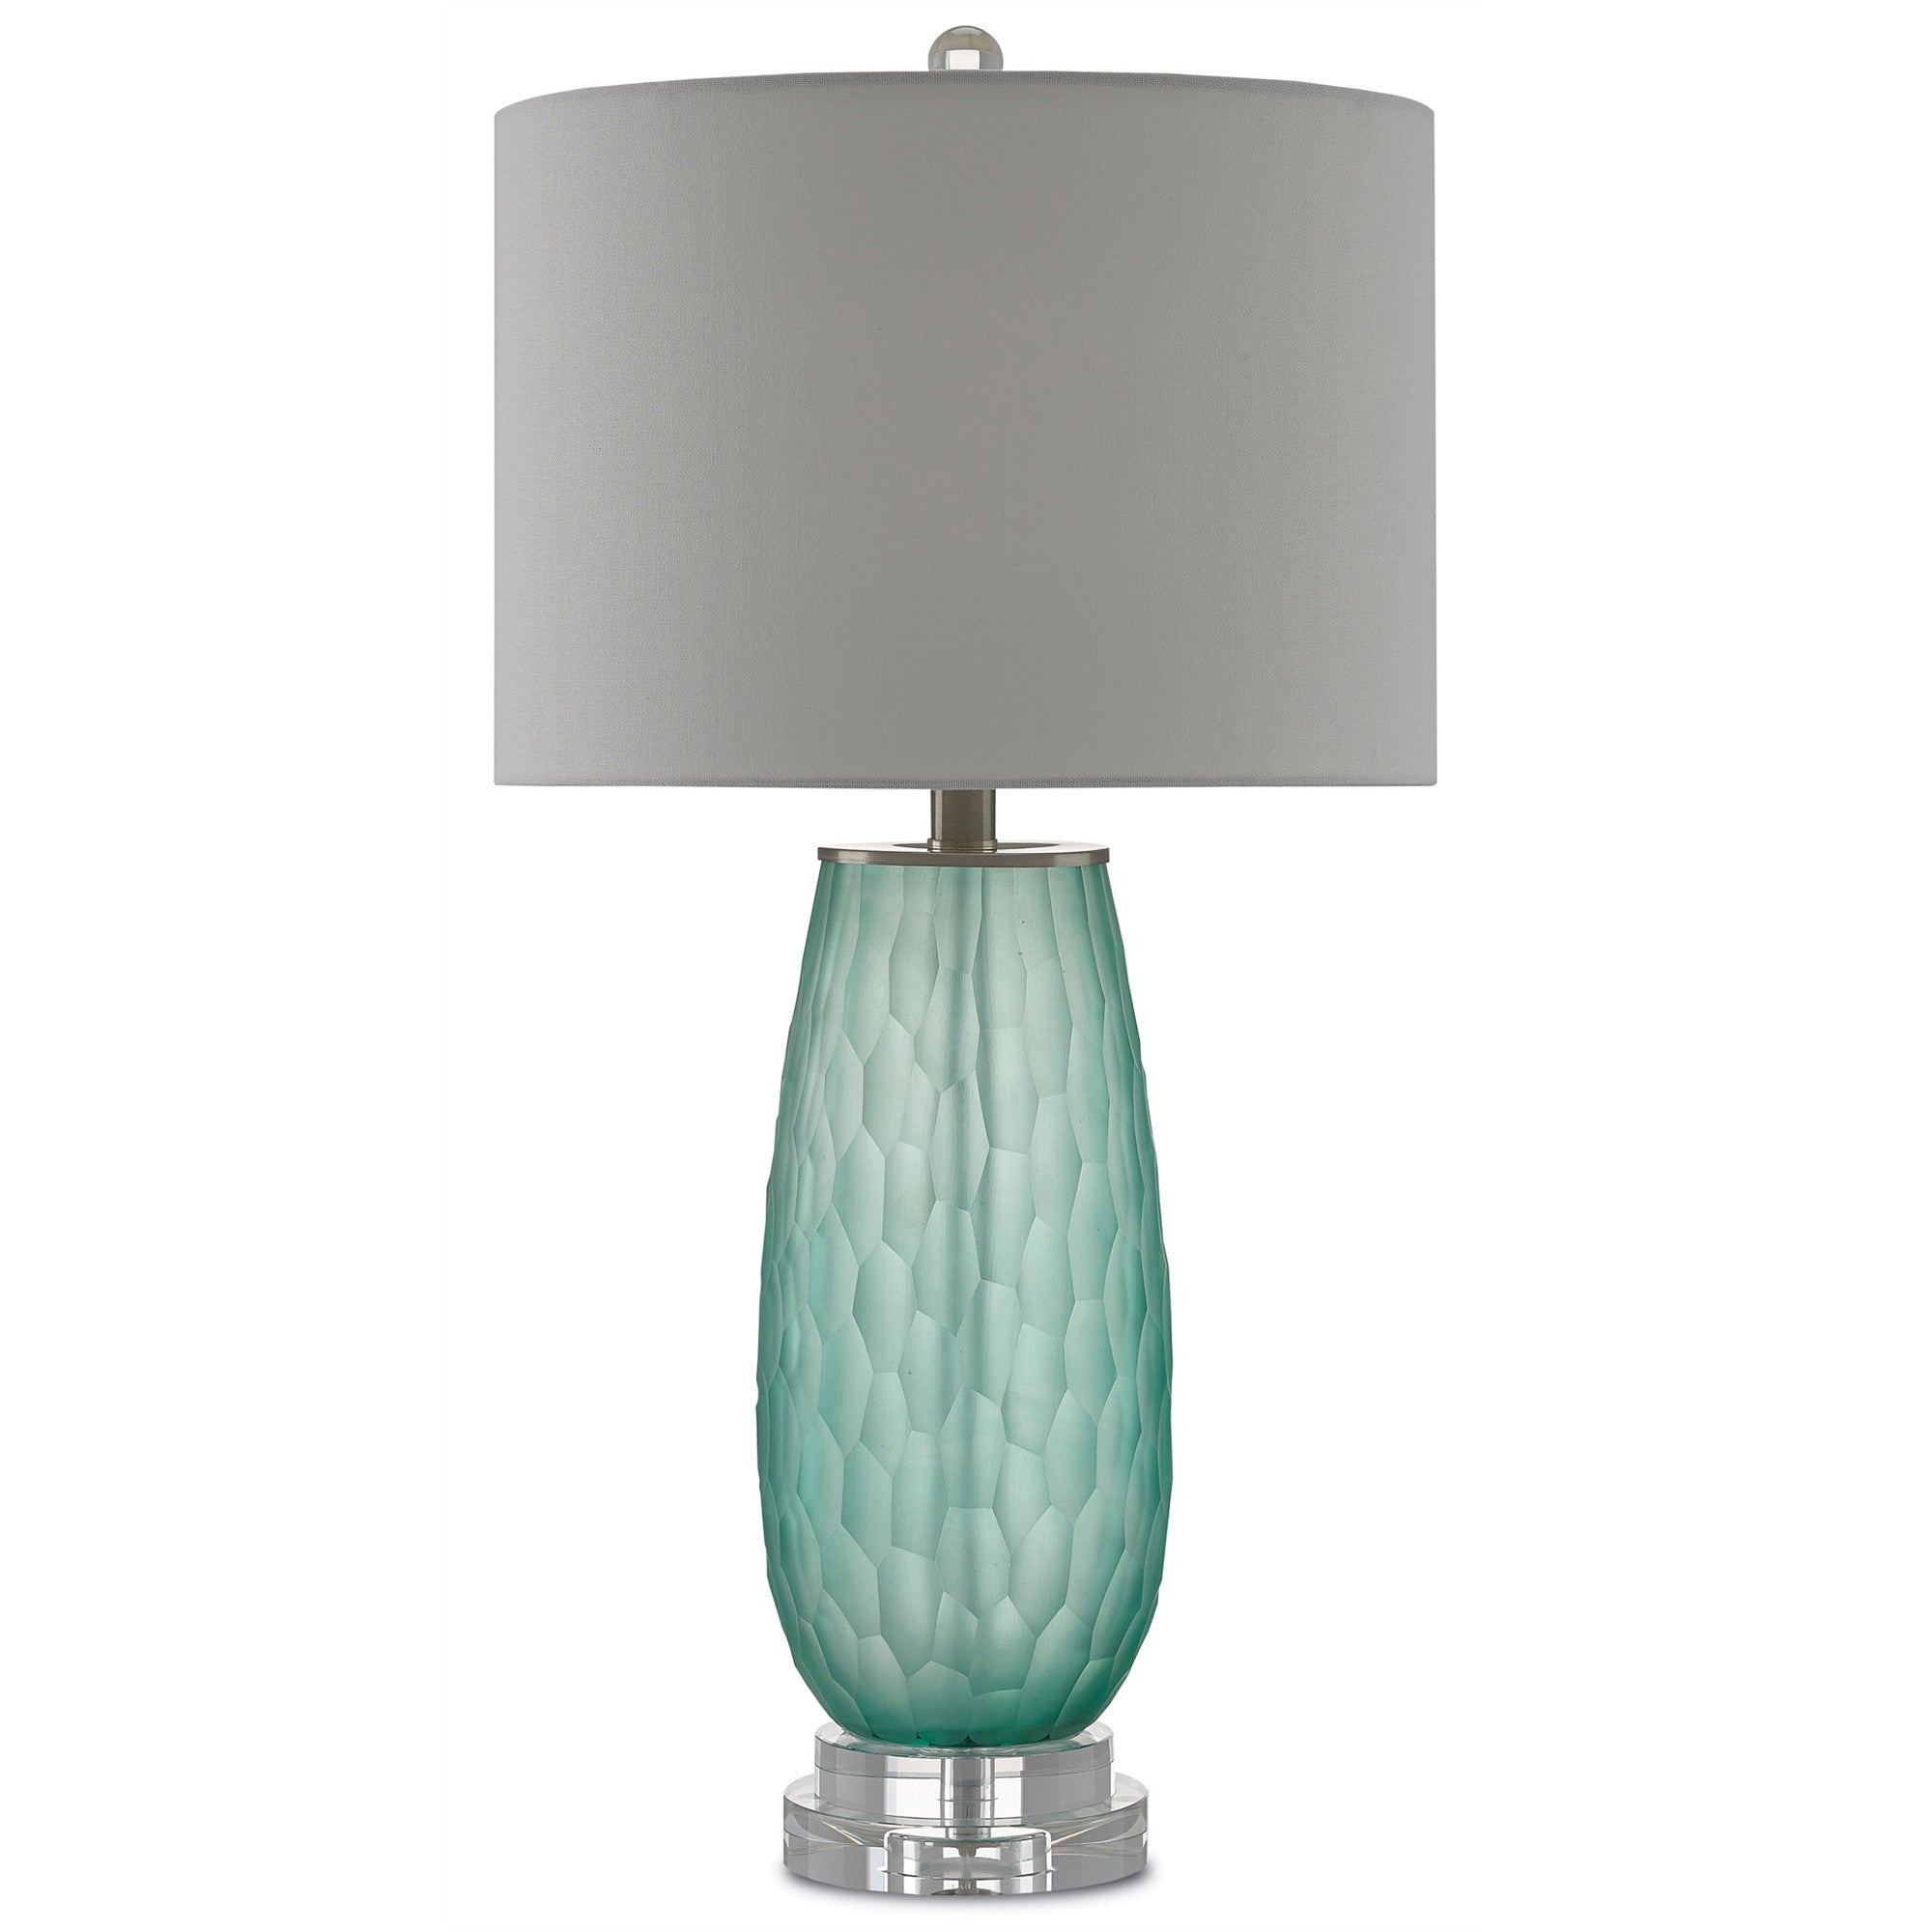 Currey and Co - Raffine Table Lamp